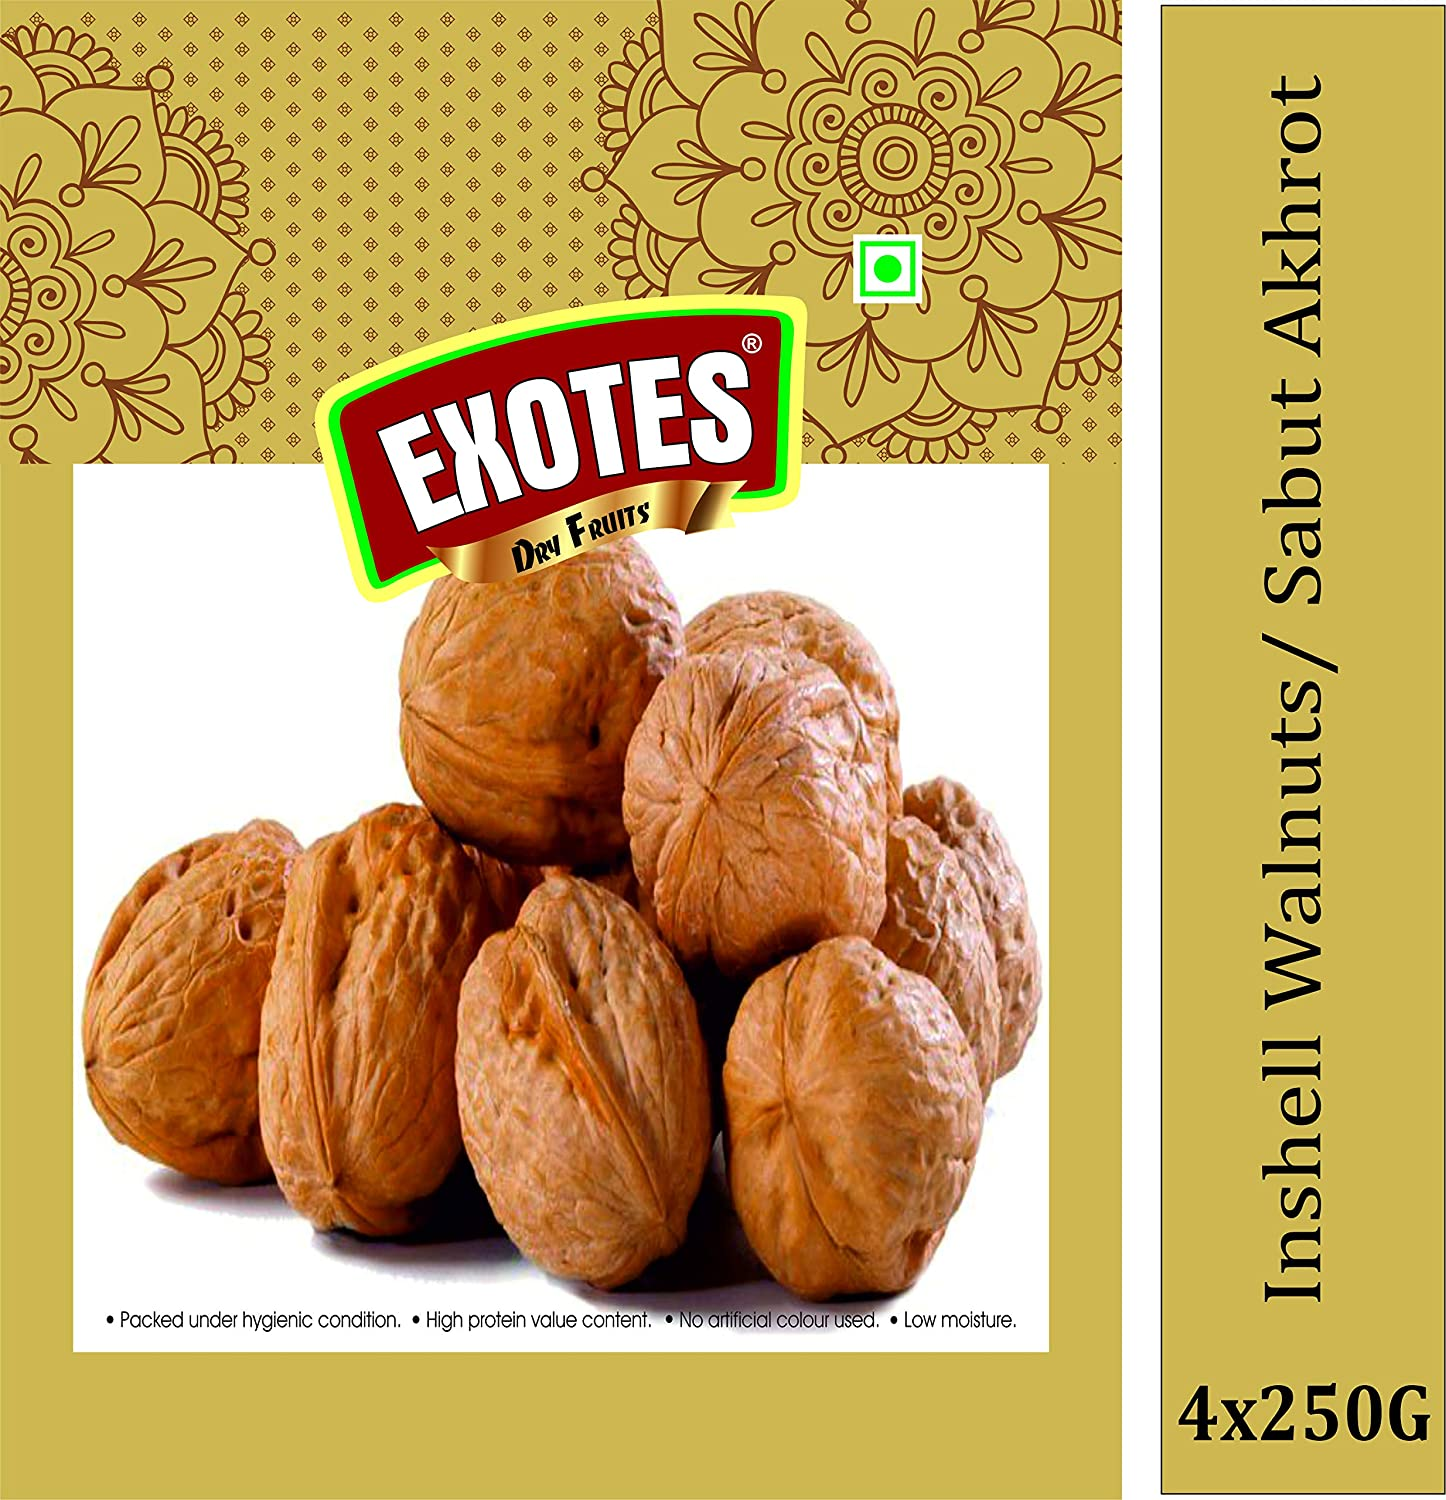 Exotes Brand Special Quality Walnut Inshell, 4 X 250 g